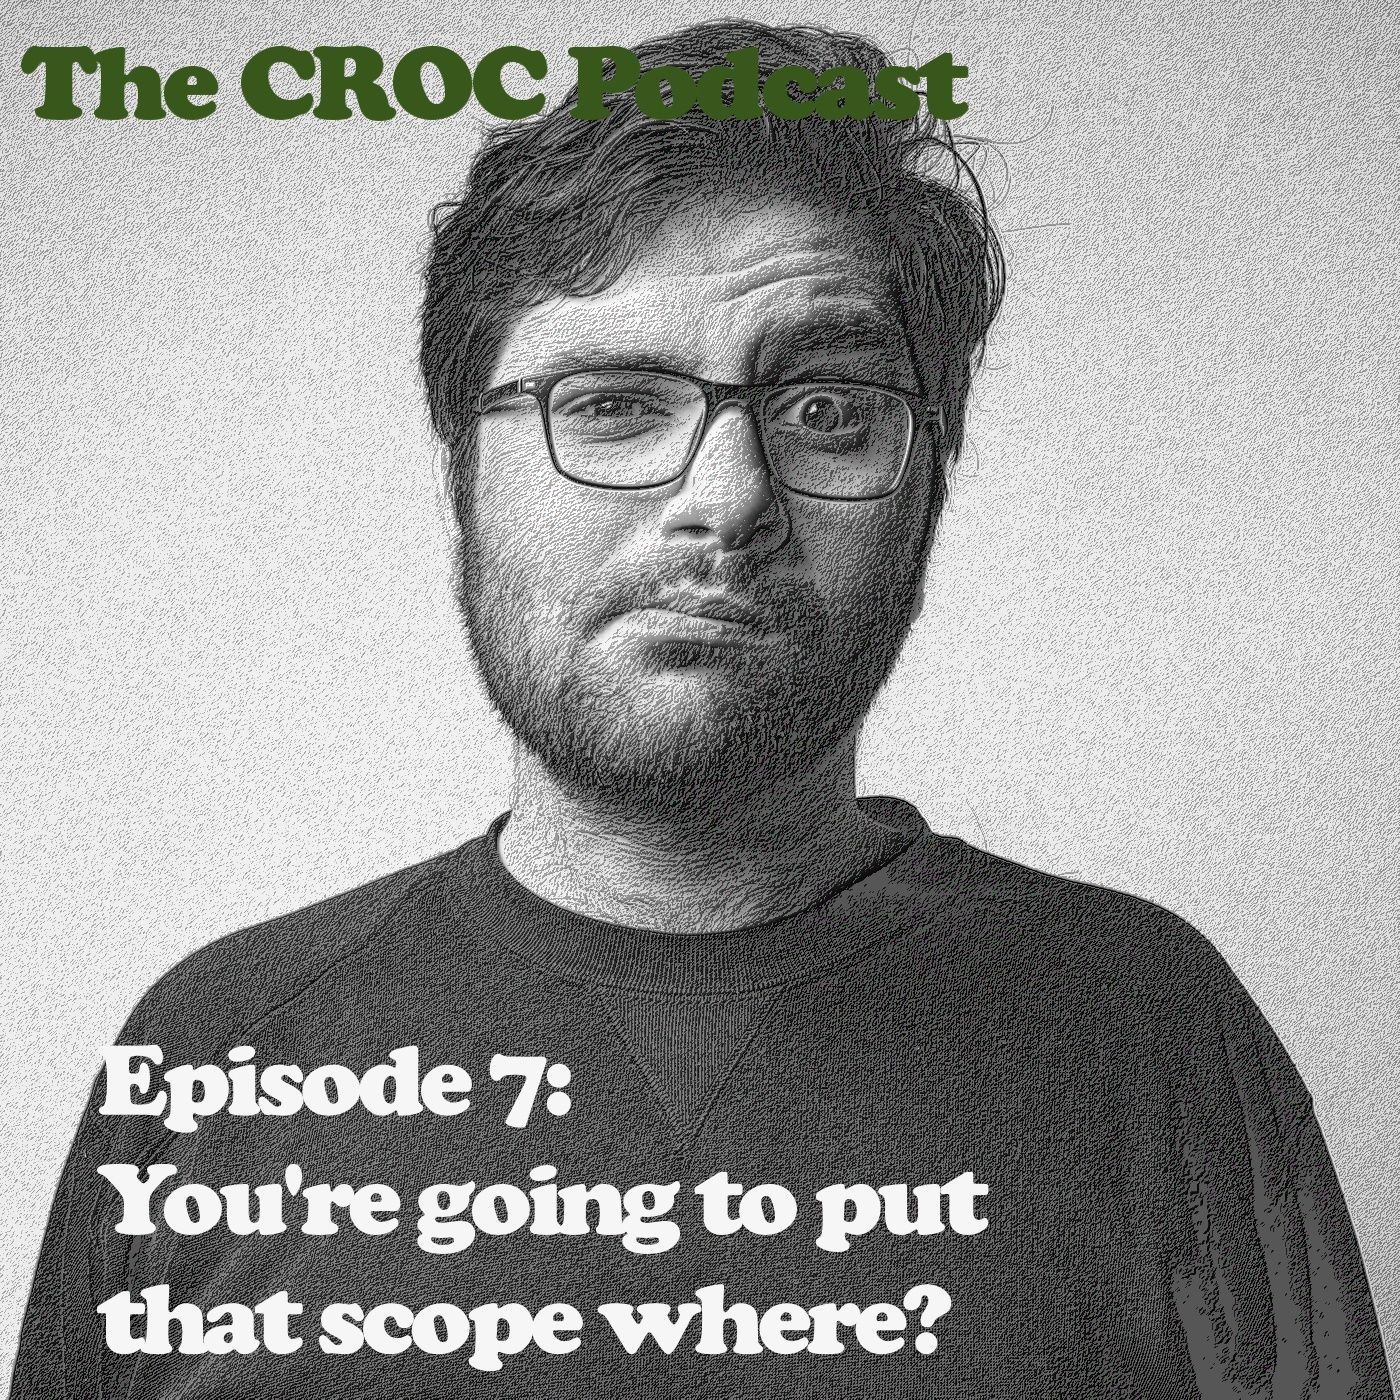 Ep7: Surveillance Module 1 - You're gonna put that scope where?